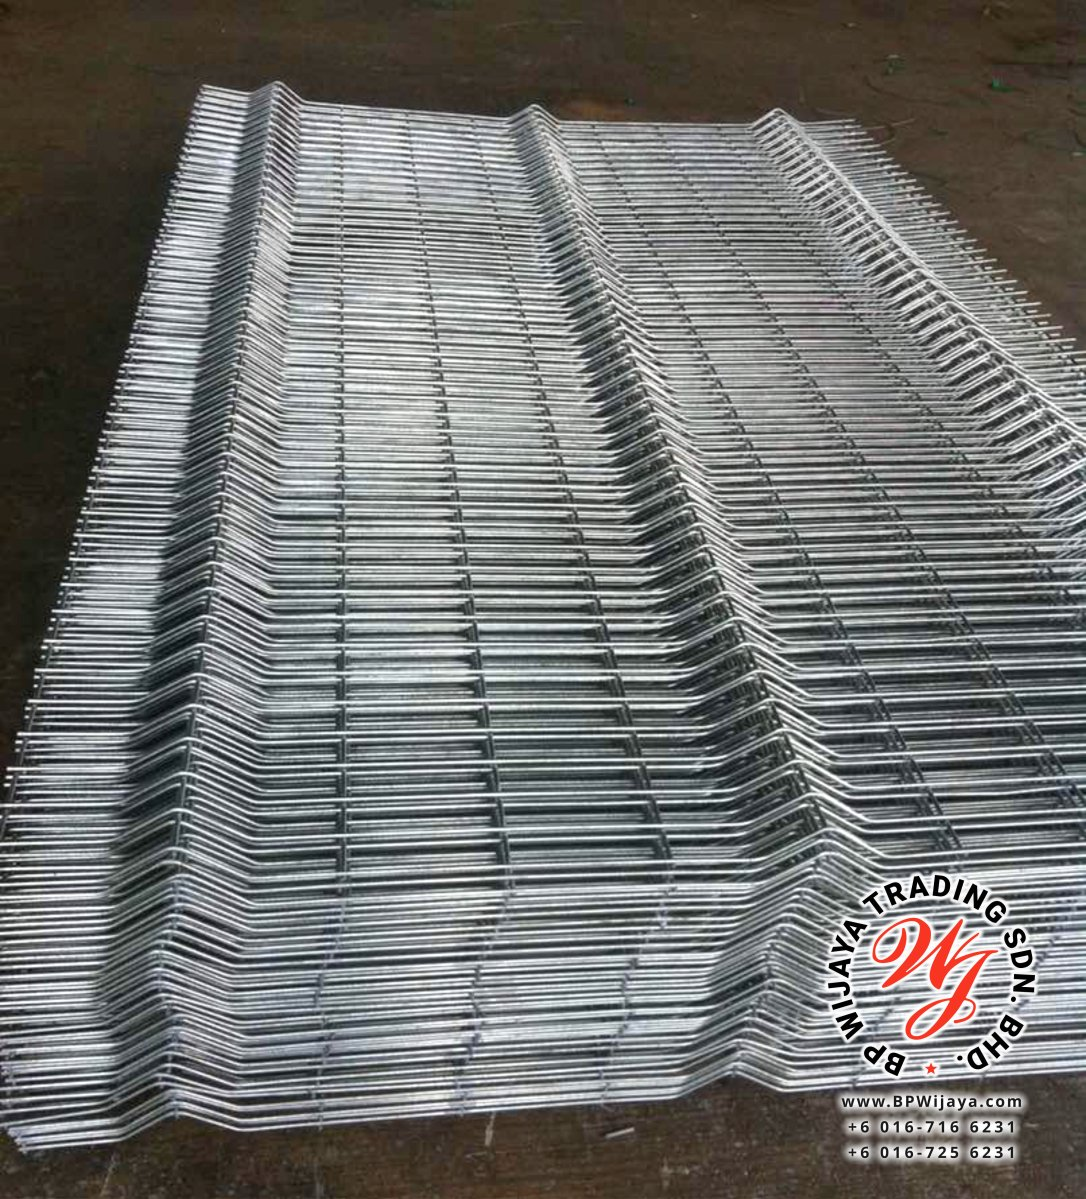 BP Wijaya Trading Sdn Bhd Malaysia Johor Batu Pahat manufacturer of safety fences building materials Hotdip Galvanized Fence Shape V Mesh Wire Fence FAV V Shape Fence BRC B04